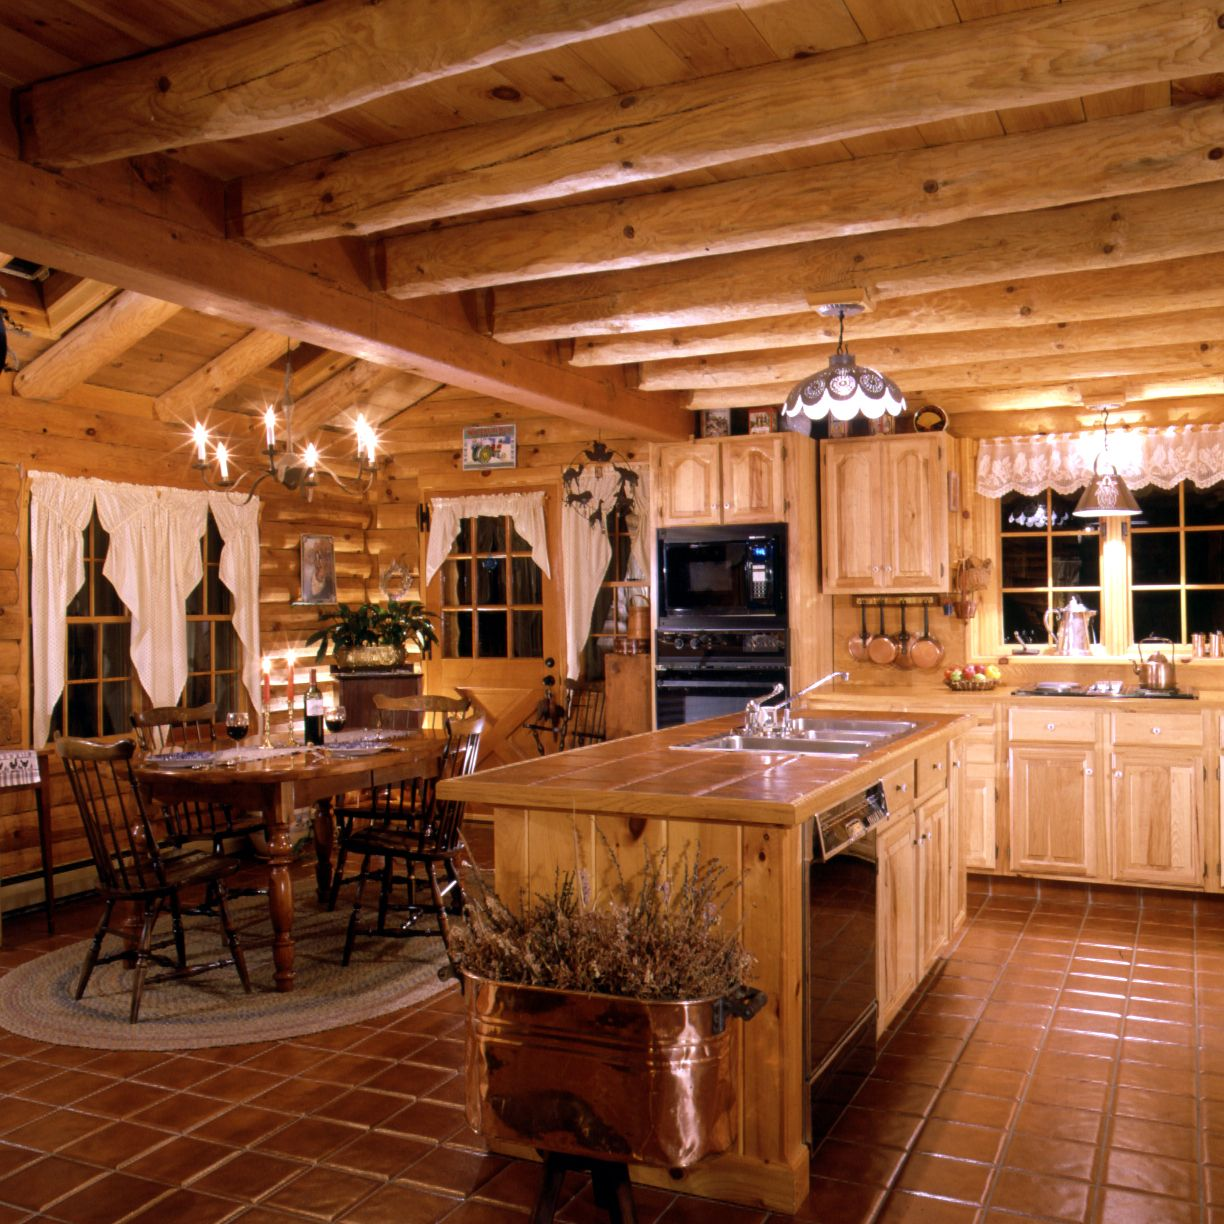 Cabin Kitchens Log Home Kitchen Warmth Of Tiles For Island Counter And Floors